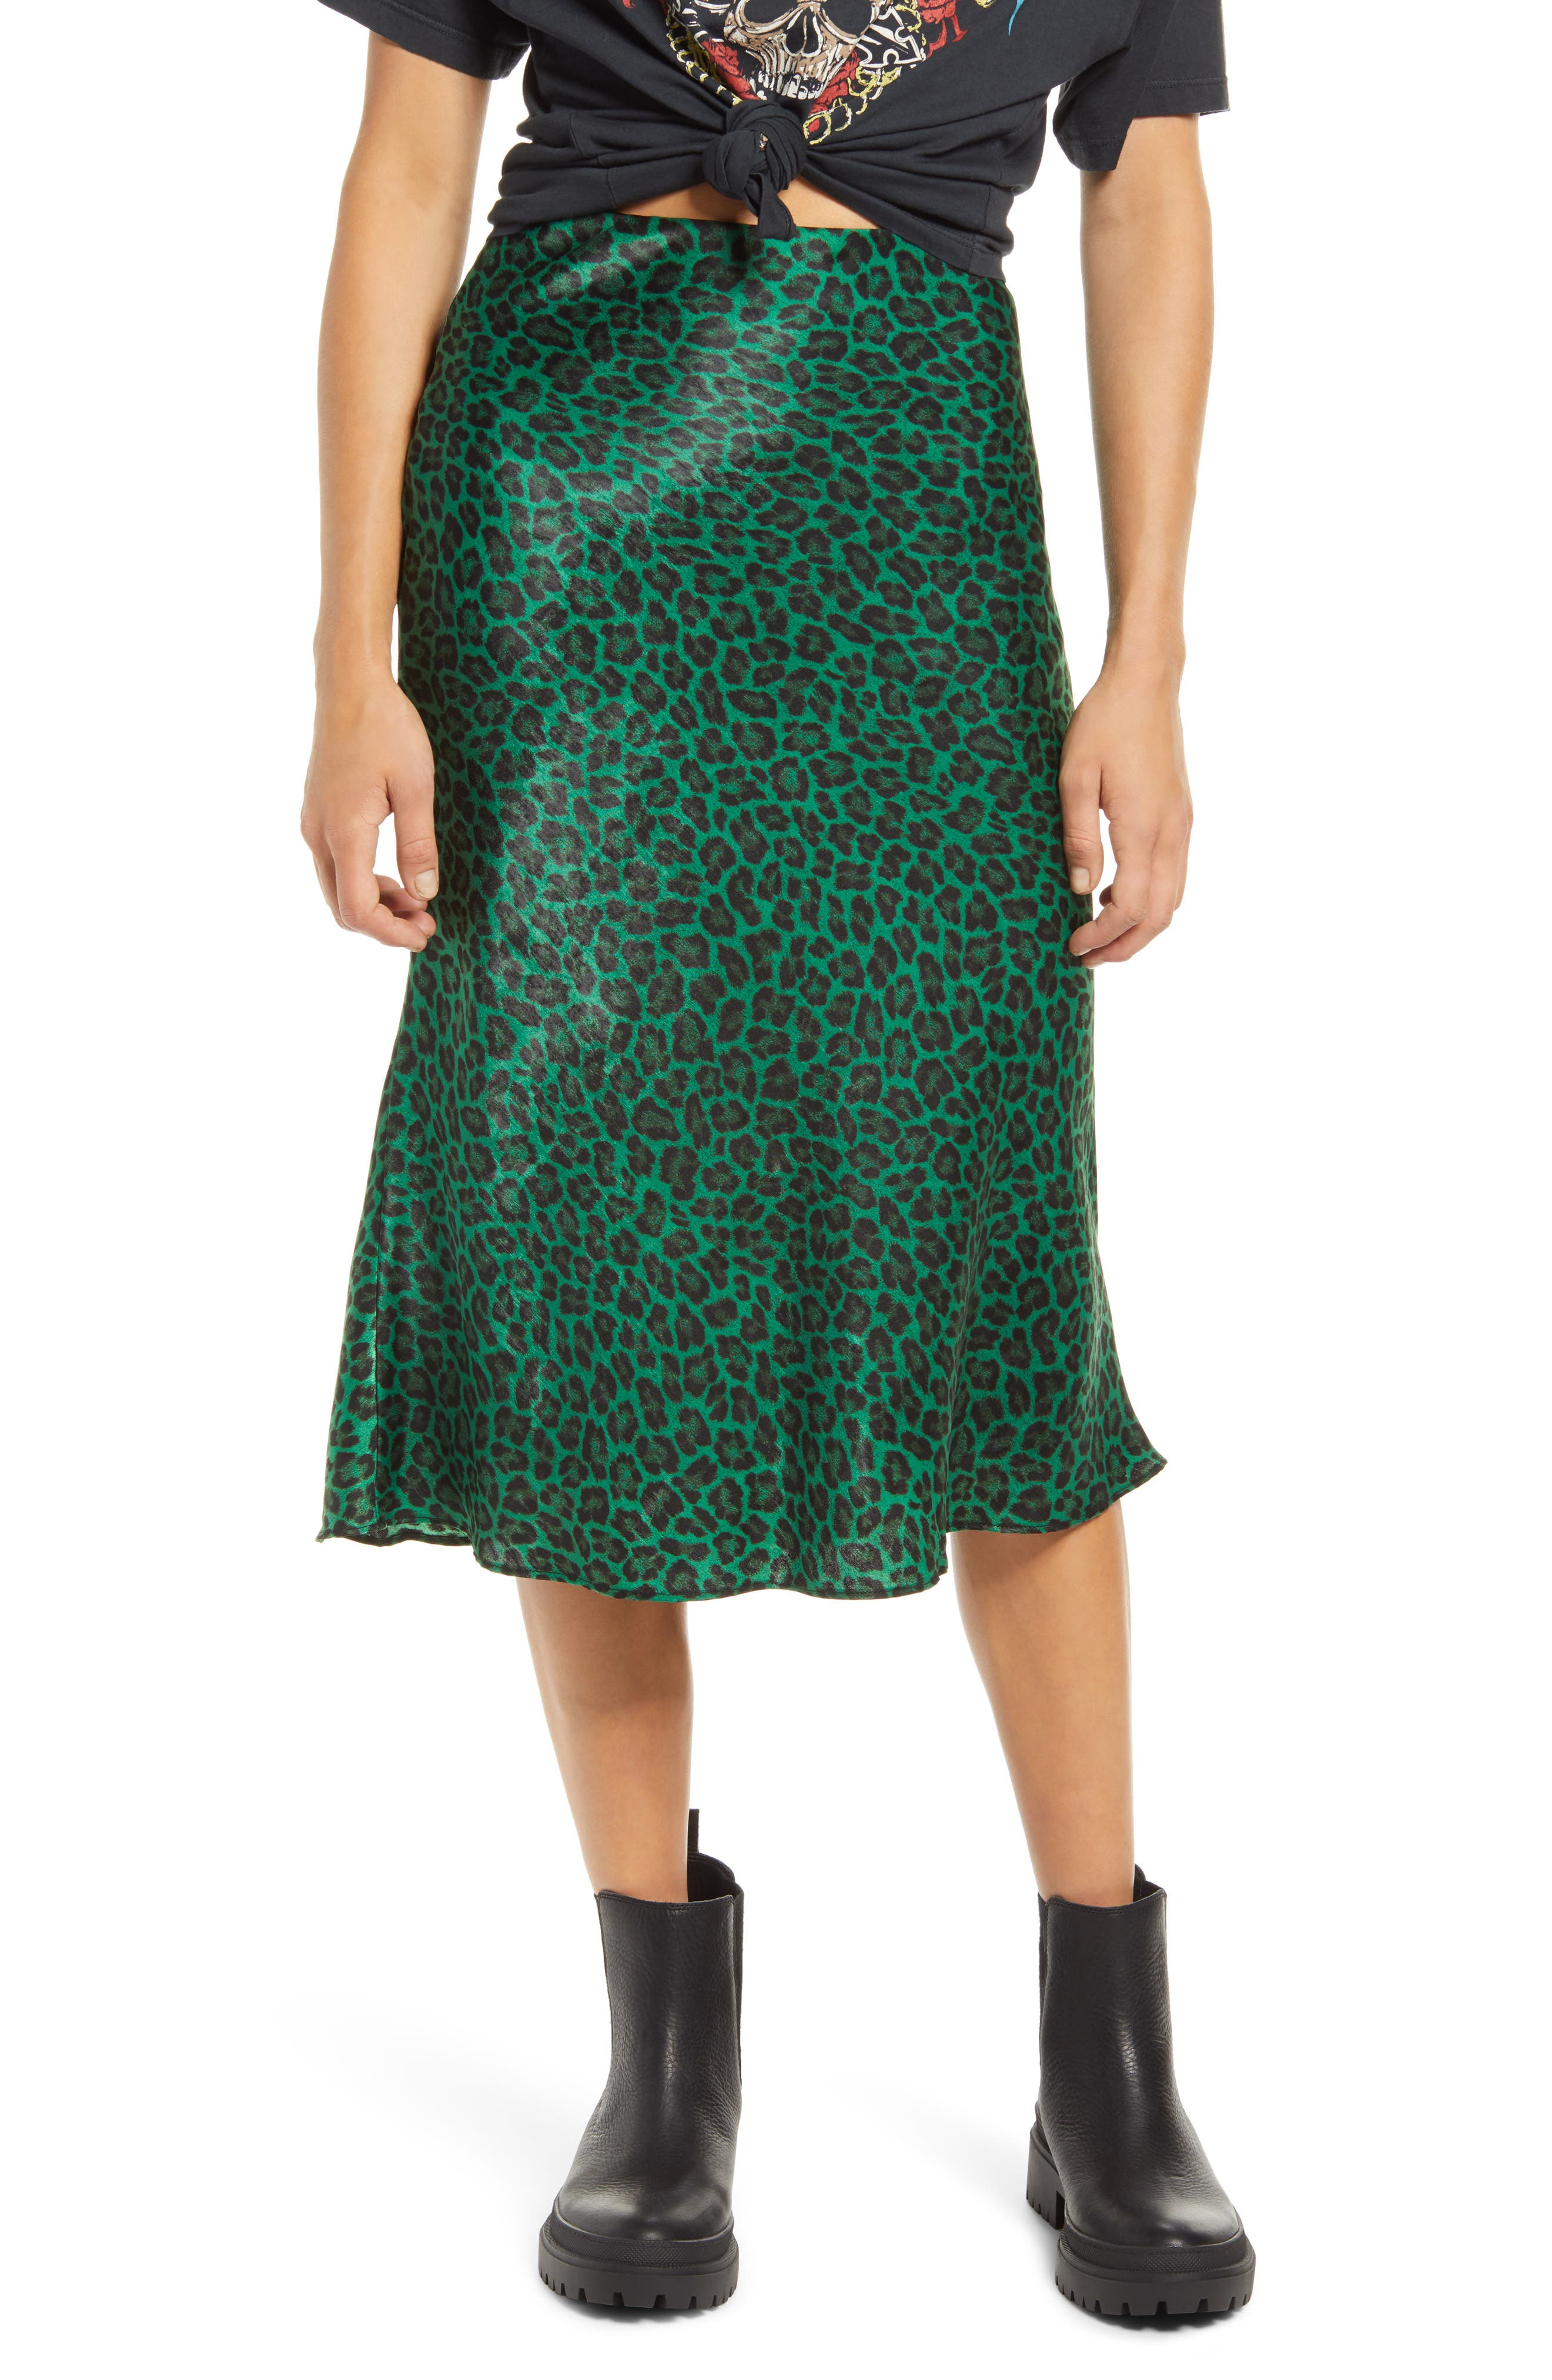 Leopard spots and a bold green hue elevate this figure-skimming midi skirt with a gently ruffled hem. Style Name: Socialite Bias Midi Skirt. Style Number: 6092065. Available in stores.